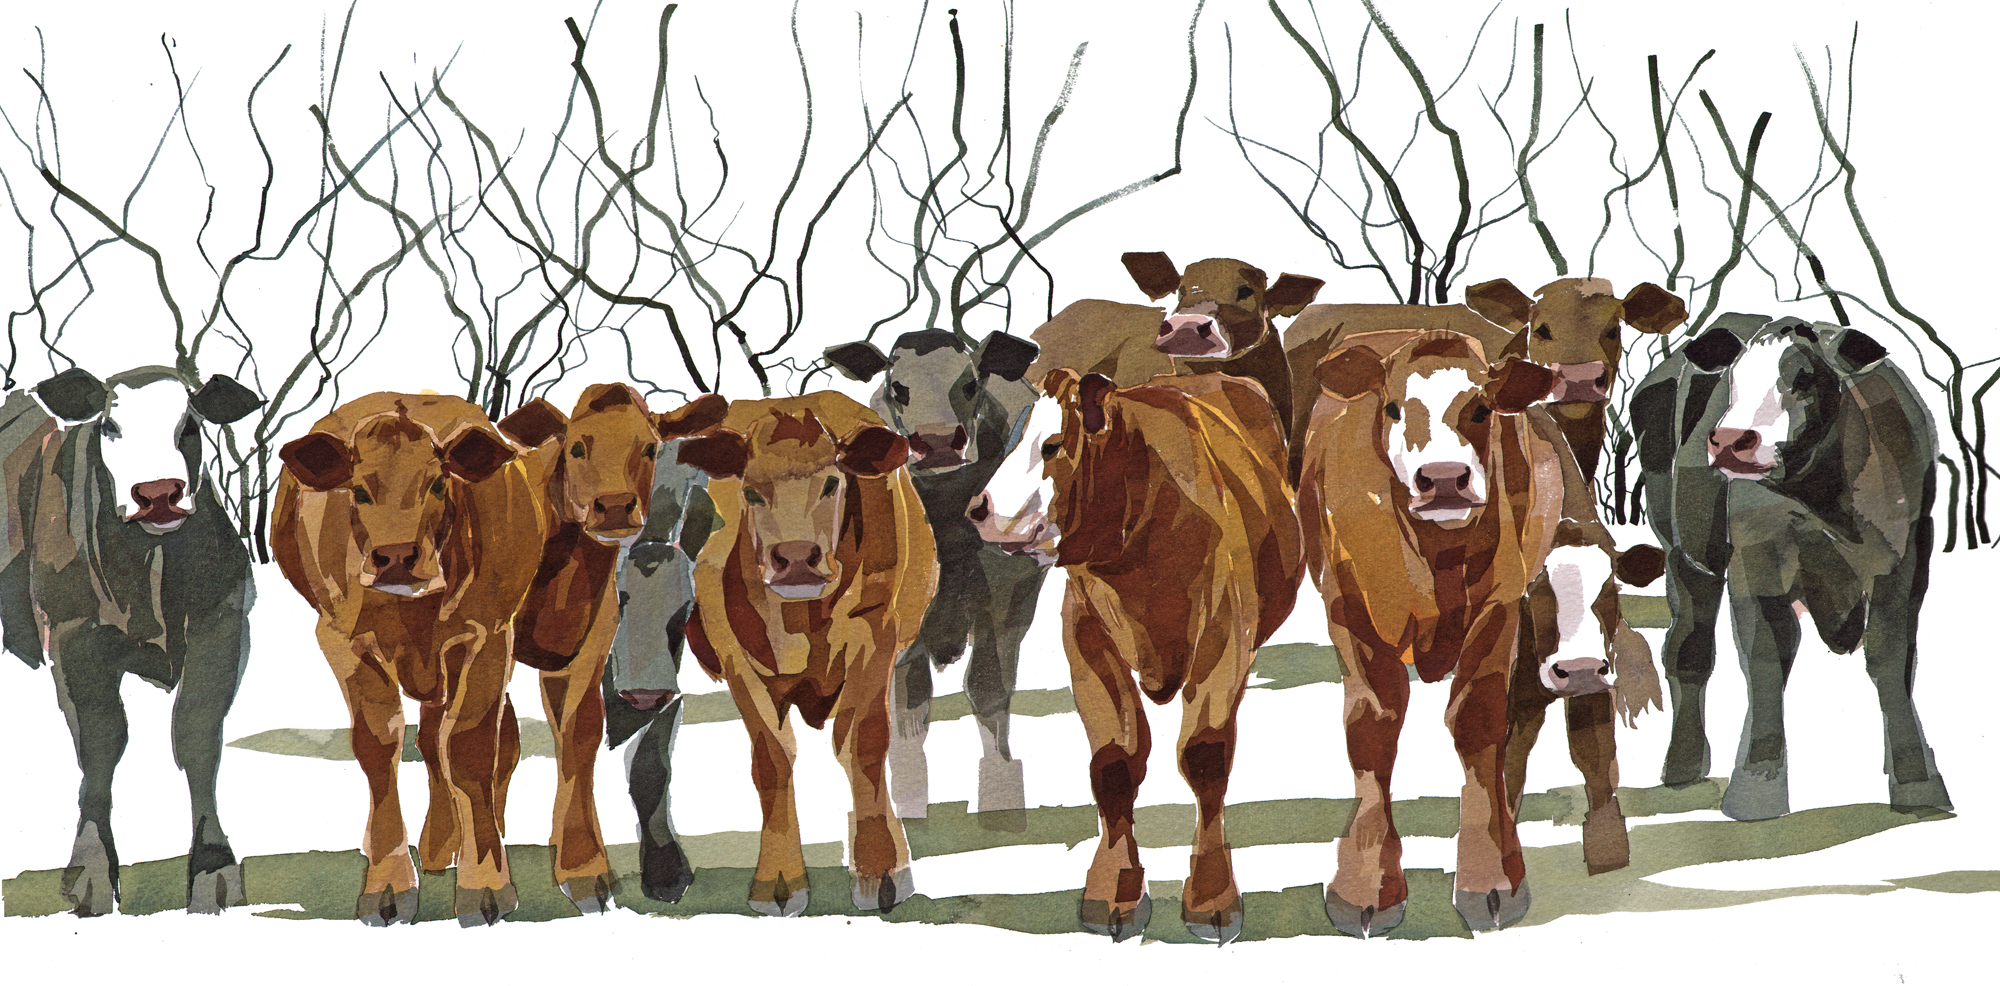 Cattle SOLD image